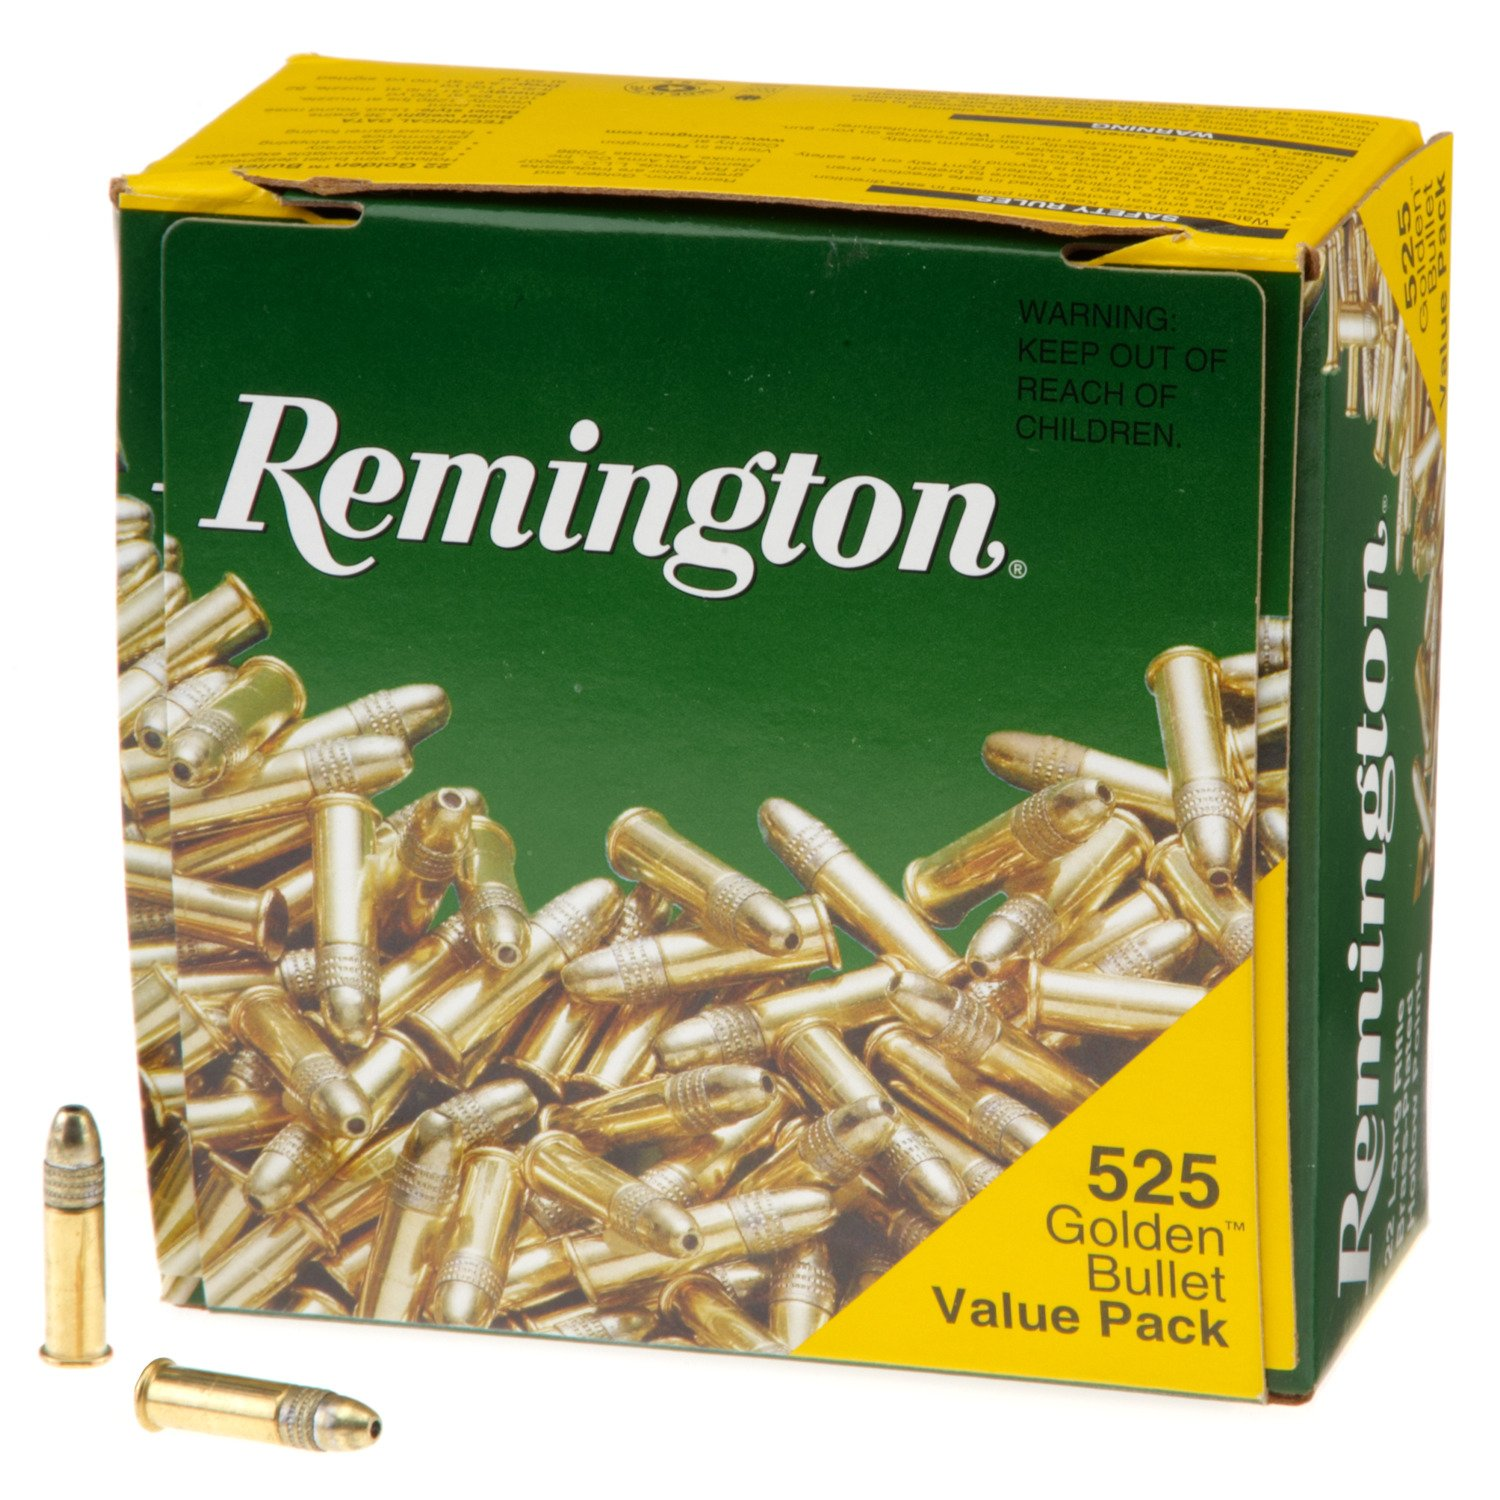 Remington Golden Bullet HP .22 LR 36-Grain Rimfire Rifle Ammunition & Search Results - 22 lr ammo | Academy